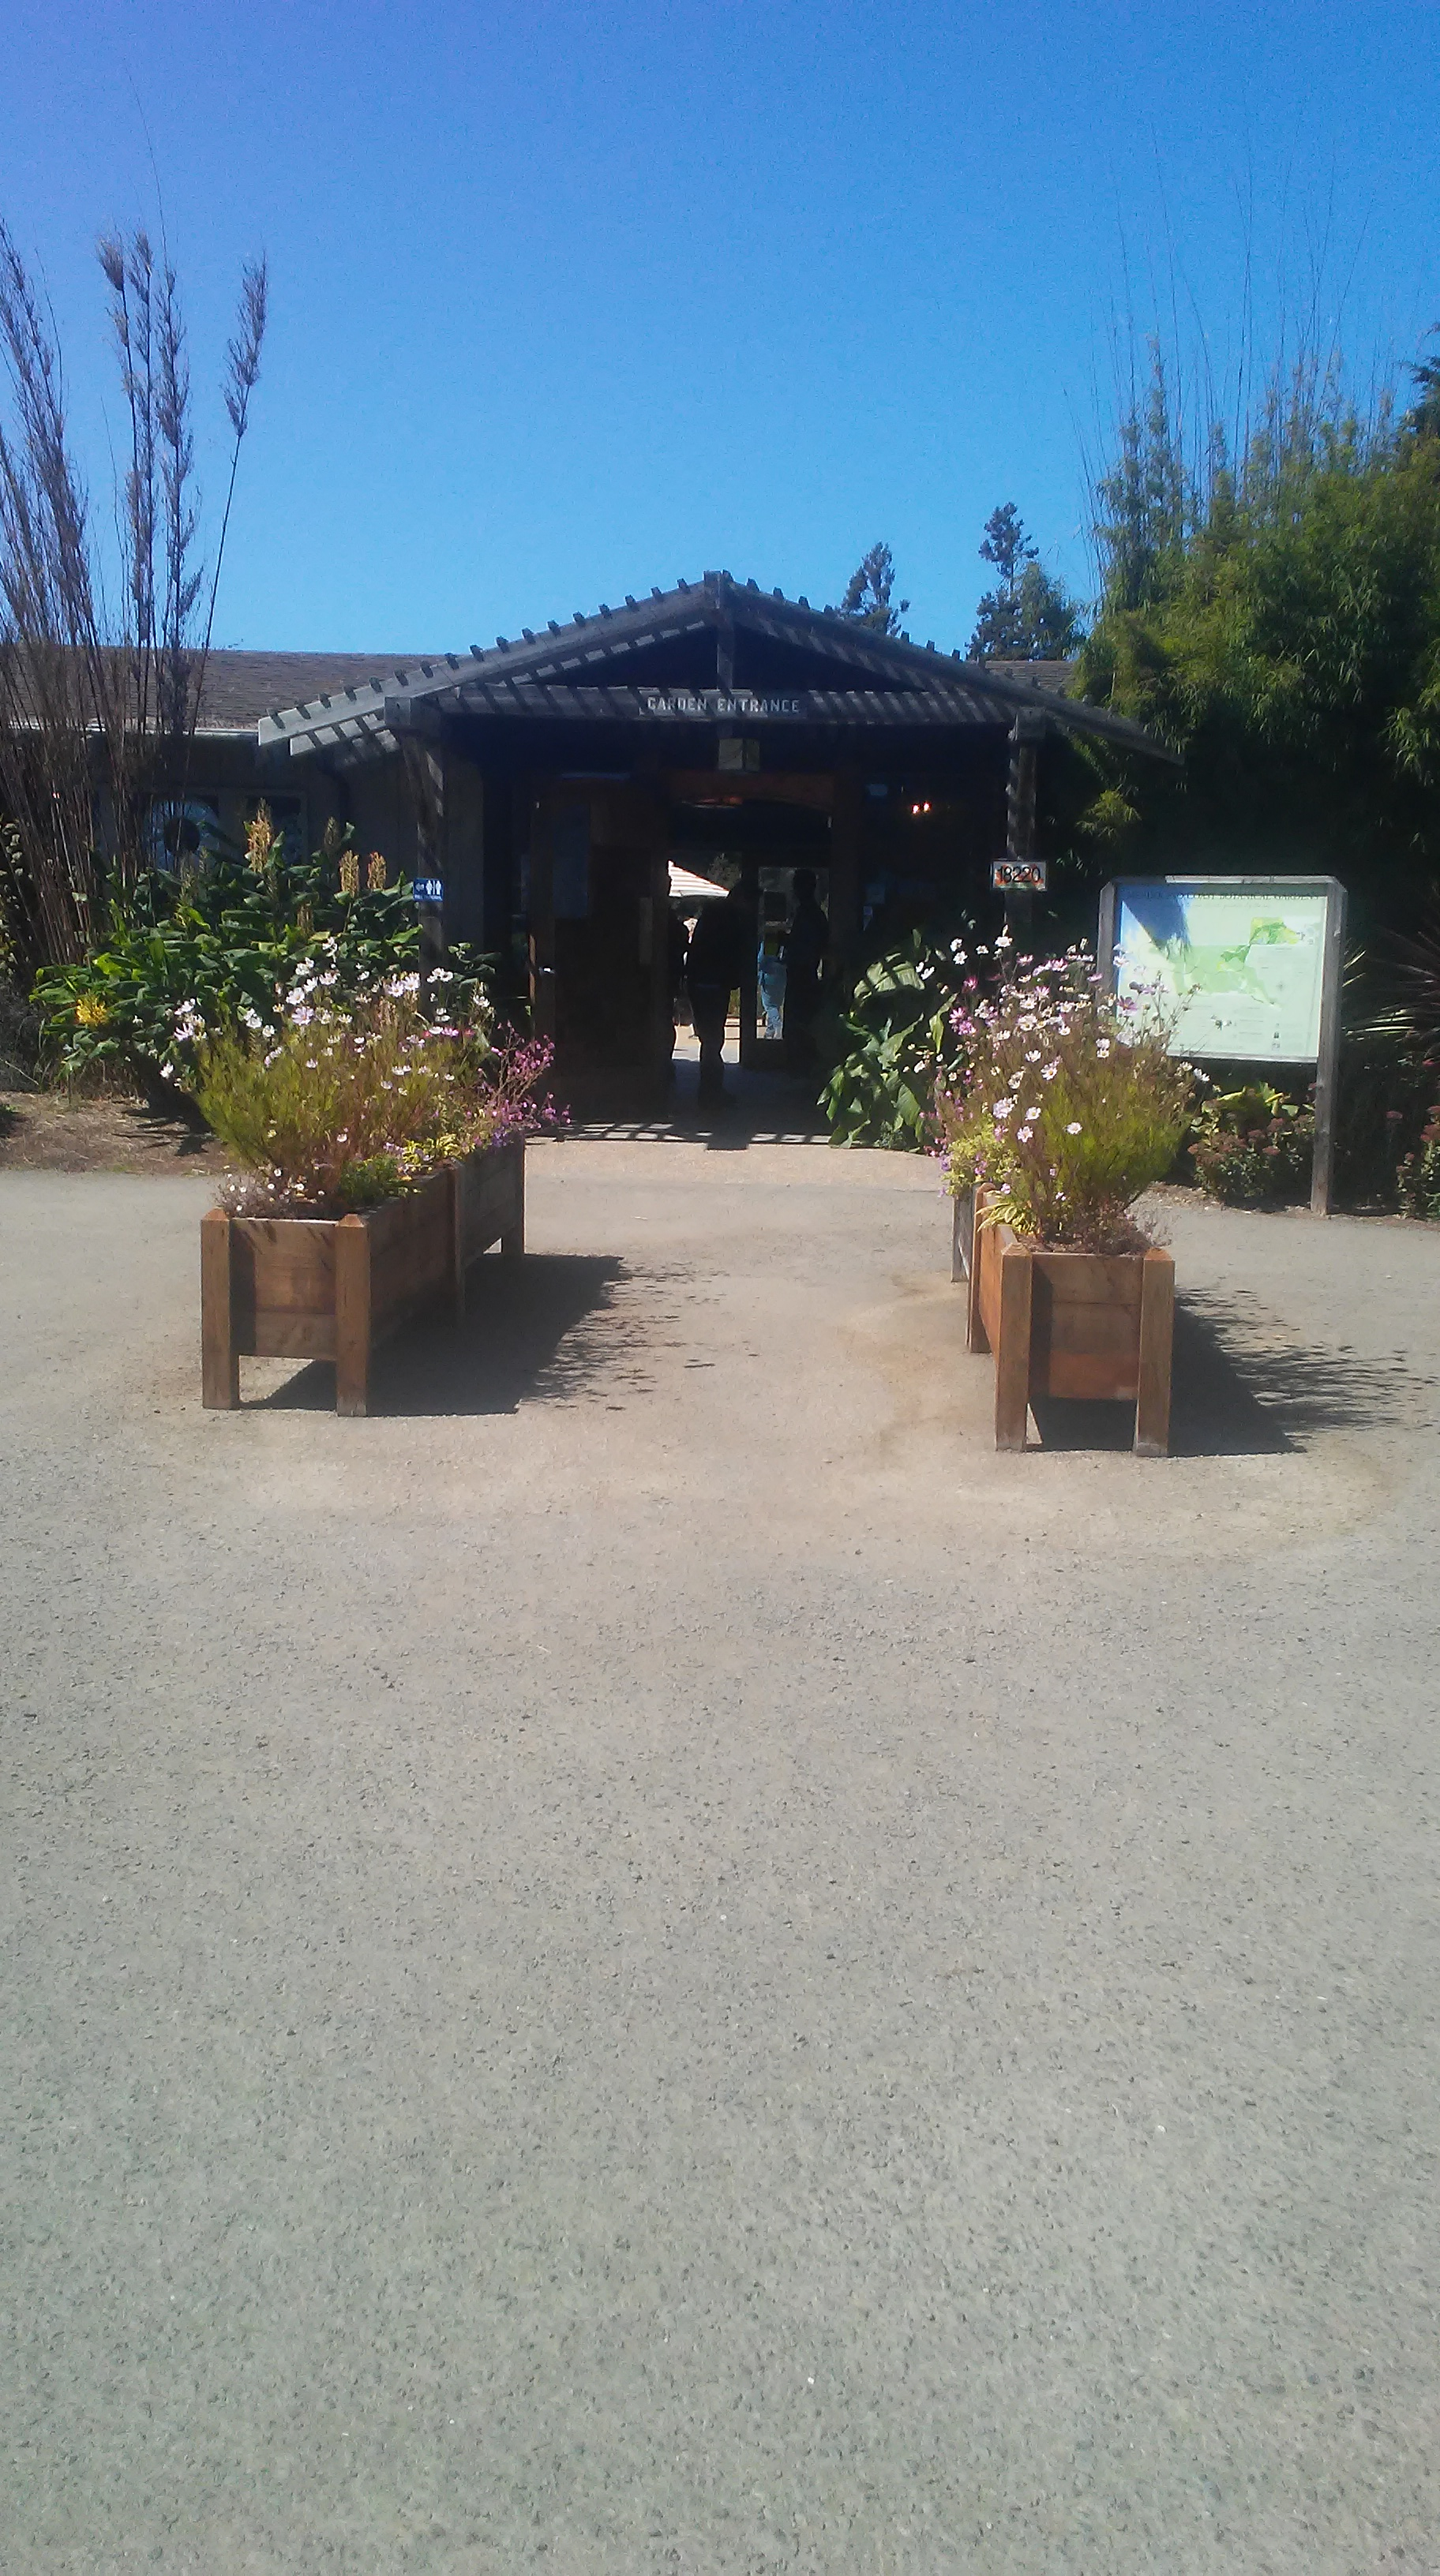 Entrance to building with redwood planter boxes on either side filled with pink blossoms.